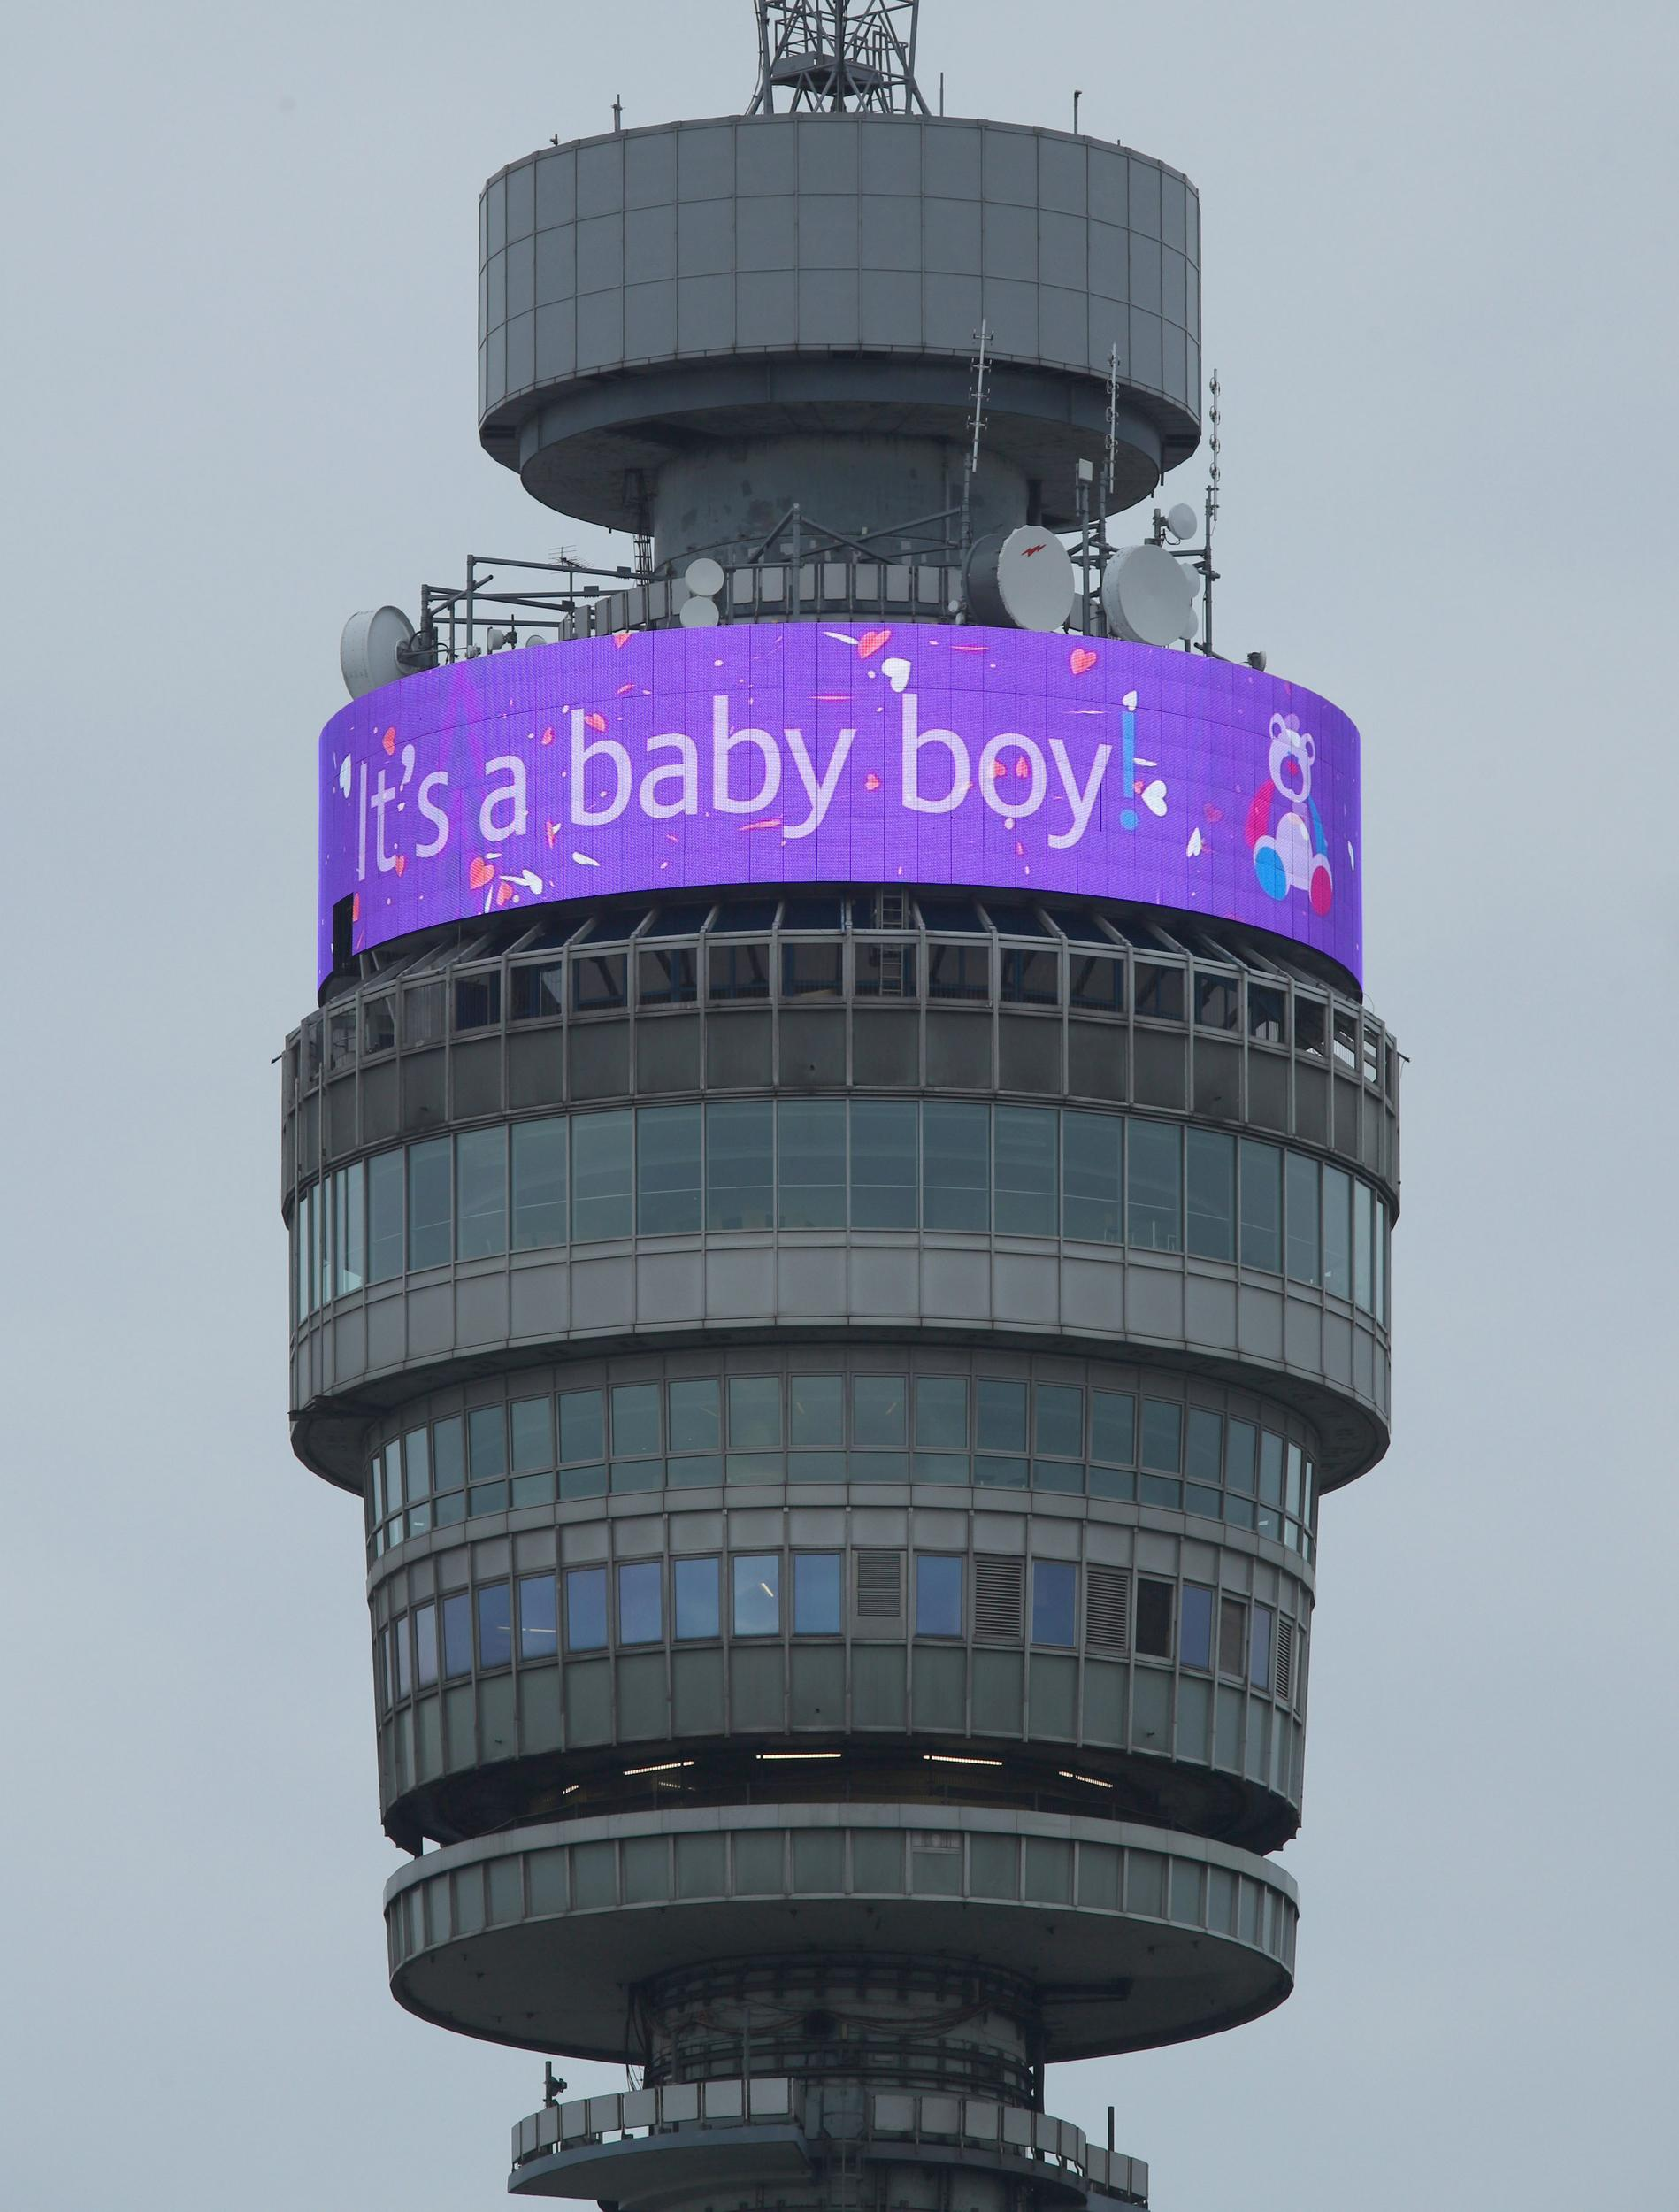 The BT Tower in London displays a message in celebration of the birth of the Duke and Duchess of Sussex's new baby boy.